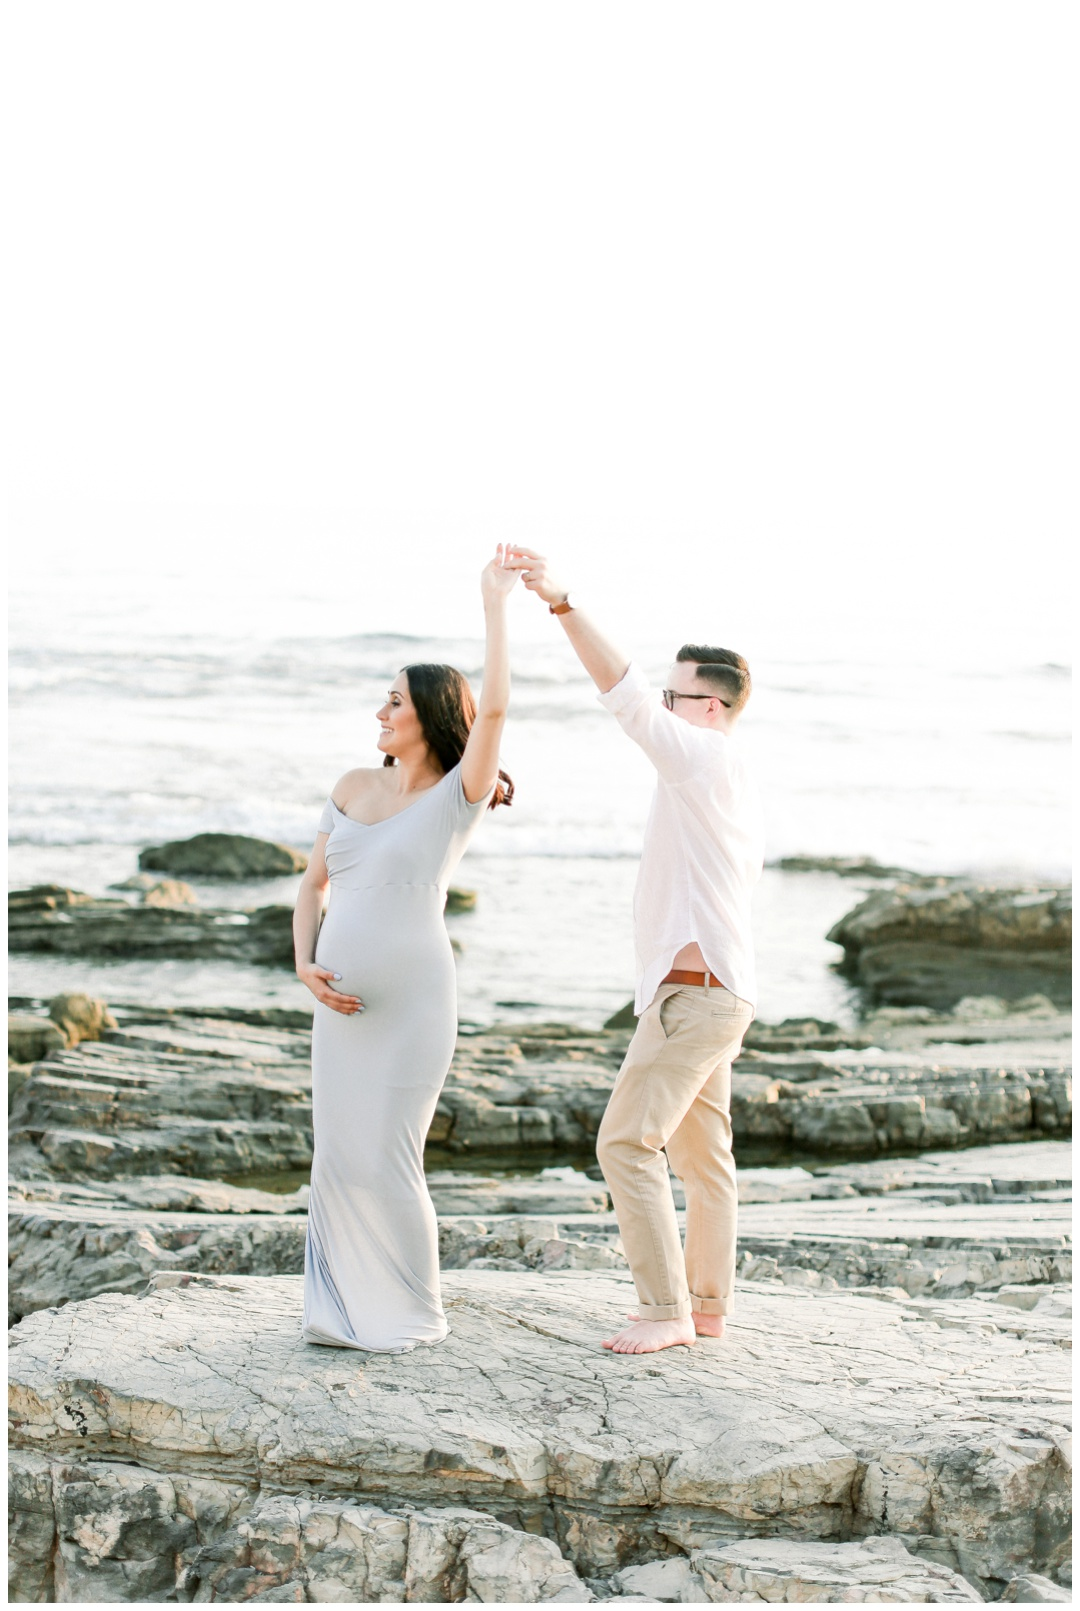 Newport_Beach_Maternity_Photographer_The_Merrill_Maternity_Session_Newport_Beach_Maternity_Photography_Orange_County_Photography_Cori_Kleckner_Photography_Orange_County_Beach_Photography_The_Ritz_Carlton_Laguna_Niguel_Resort_ Maternity_Session__1797.jpg